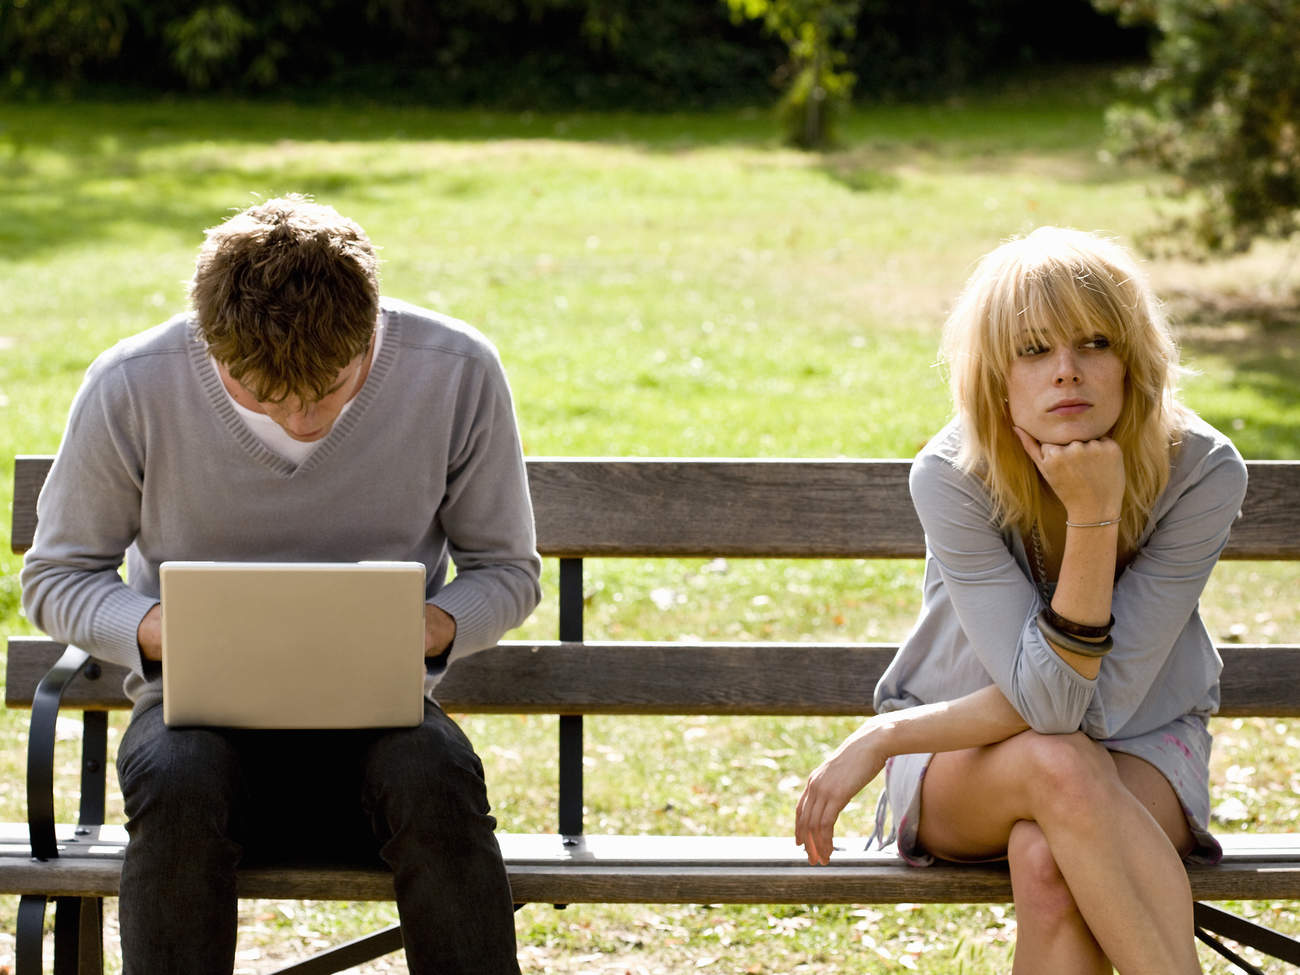 unhappy couple relationship issue problem work stress technology